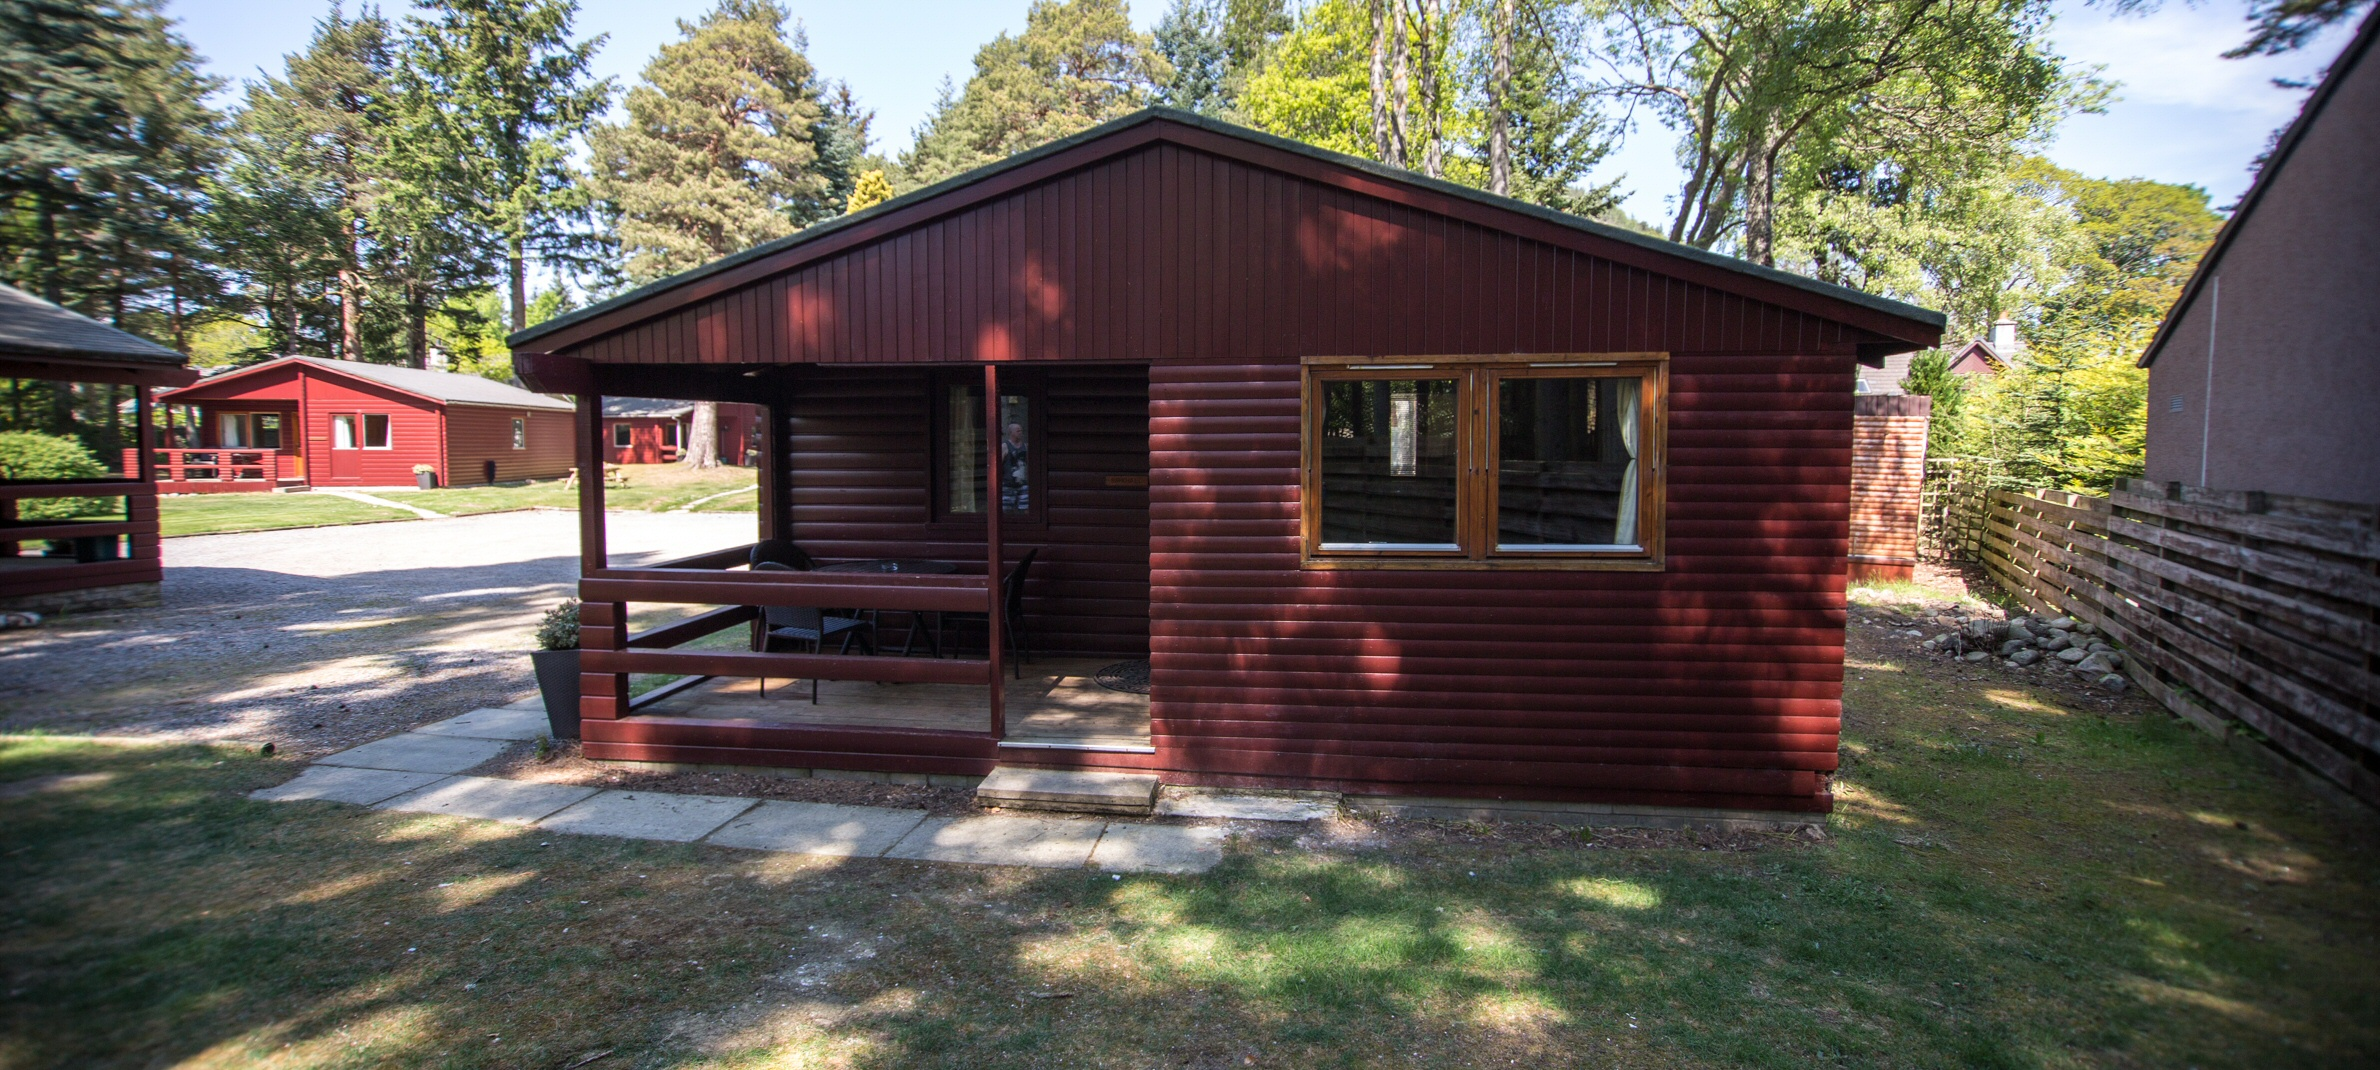 <h2>7 self-catering lodges in the heart of Ballater and Royal Deeside - Birkhall</h2><div class='slide-content'></div>